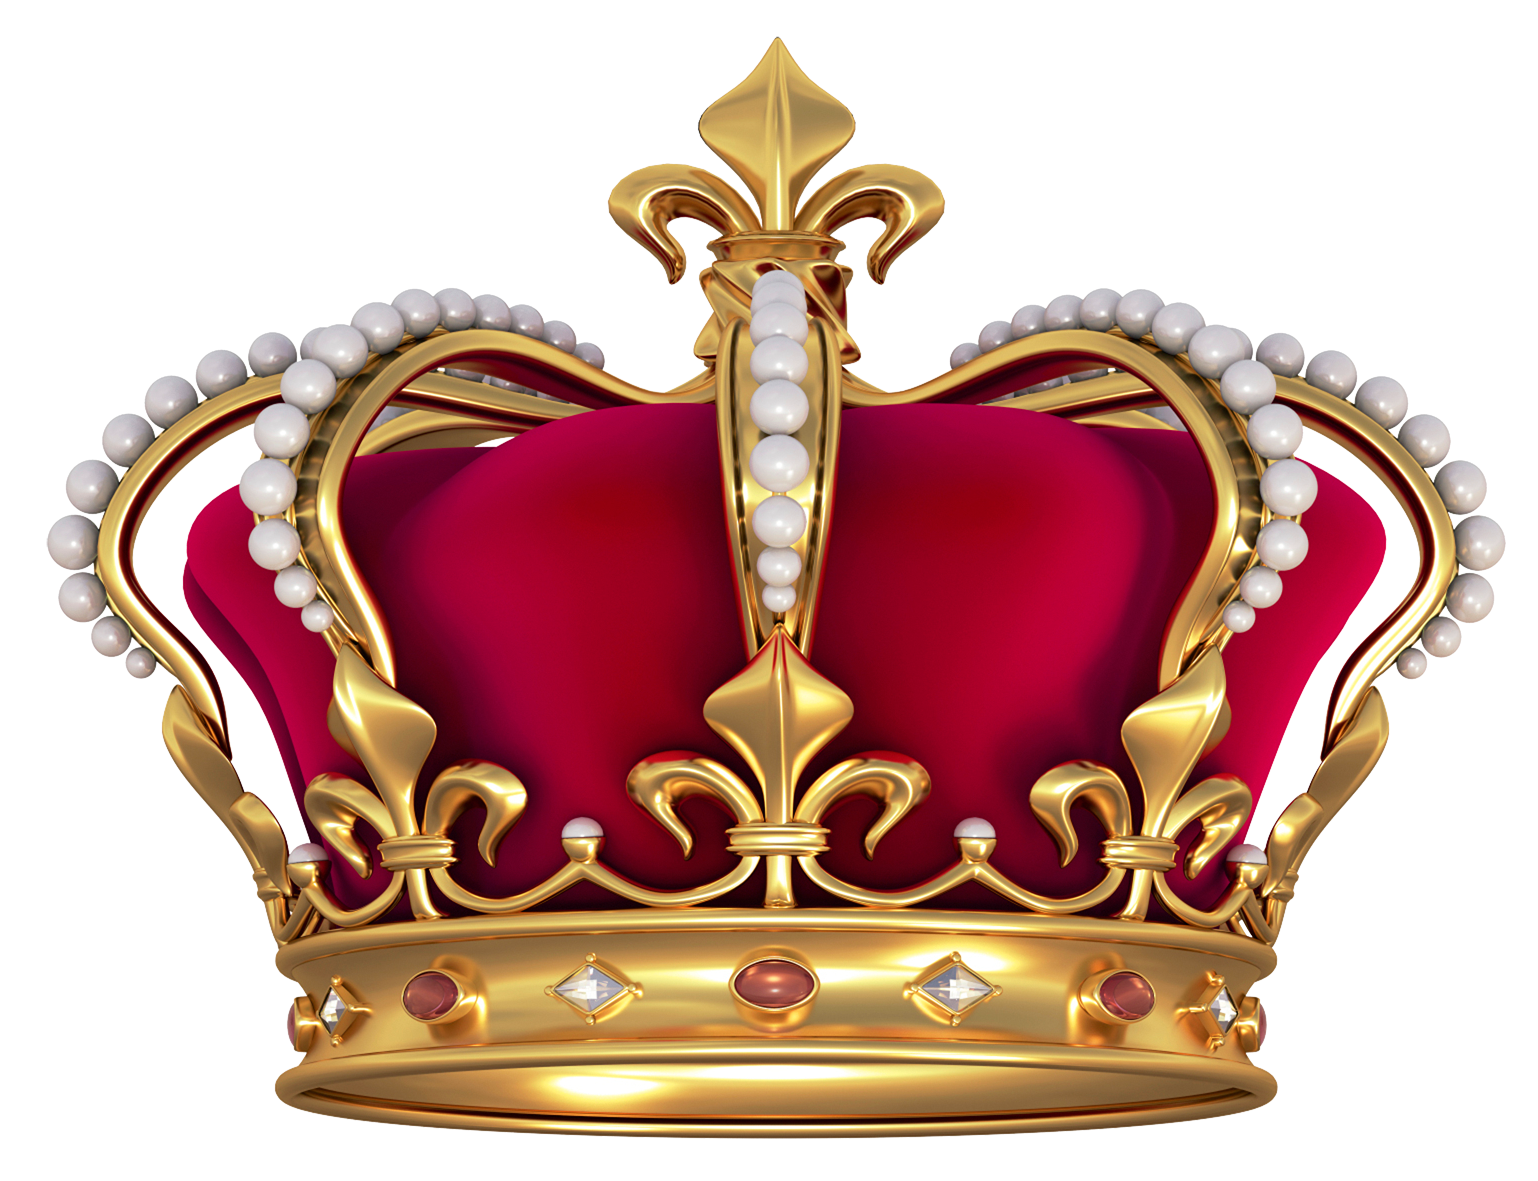 Sparkling gold crown clipart png transparent Red Gold Crown with Pearls PNG Clipart Picture | Crafting - Regal ... png transparent